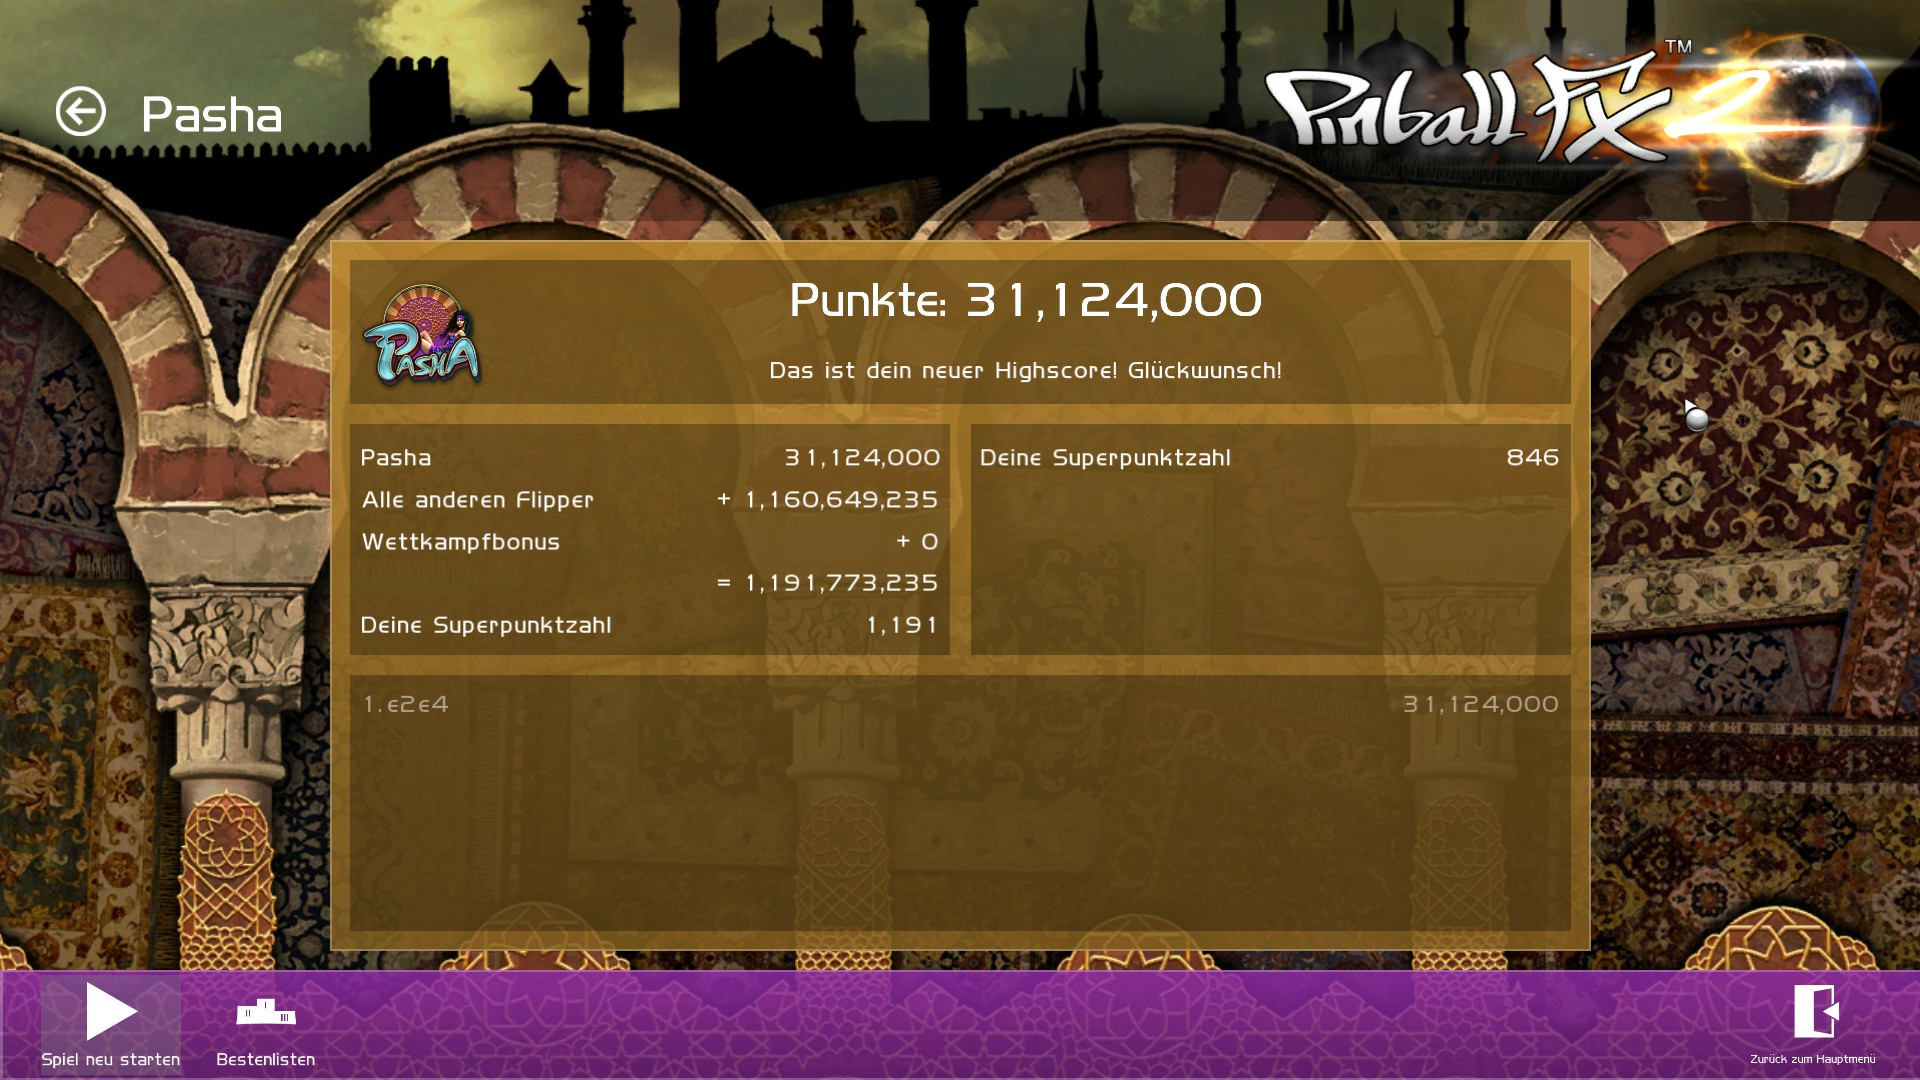 Pinball FX 2: Pasha 31,124,000 points